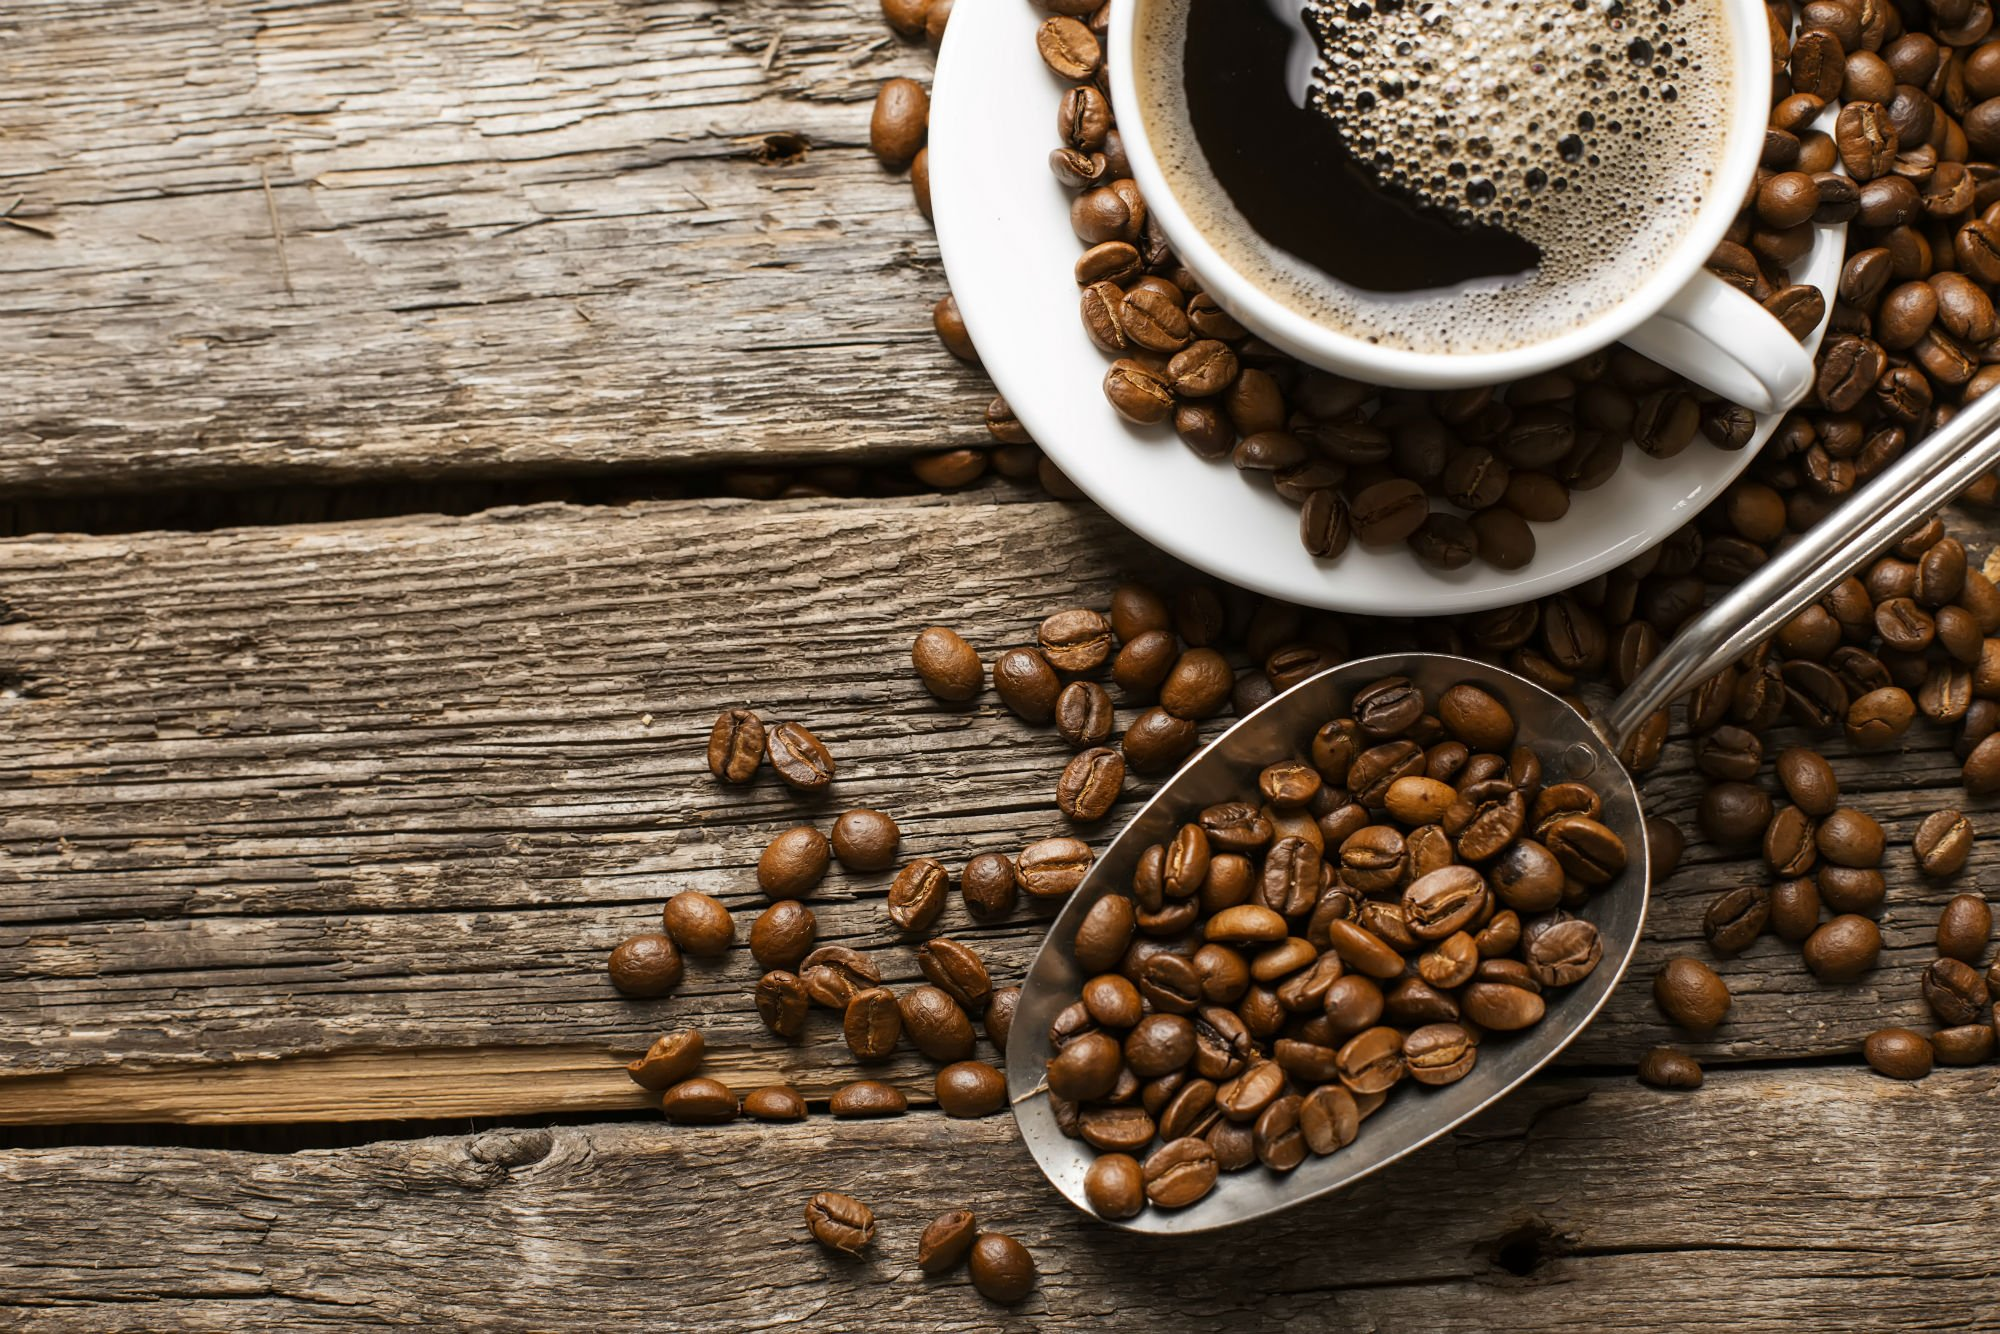 8 SCIENTIFICALLY PROVEN COFFEE HEALTH BENEFITS